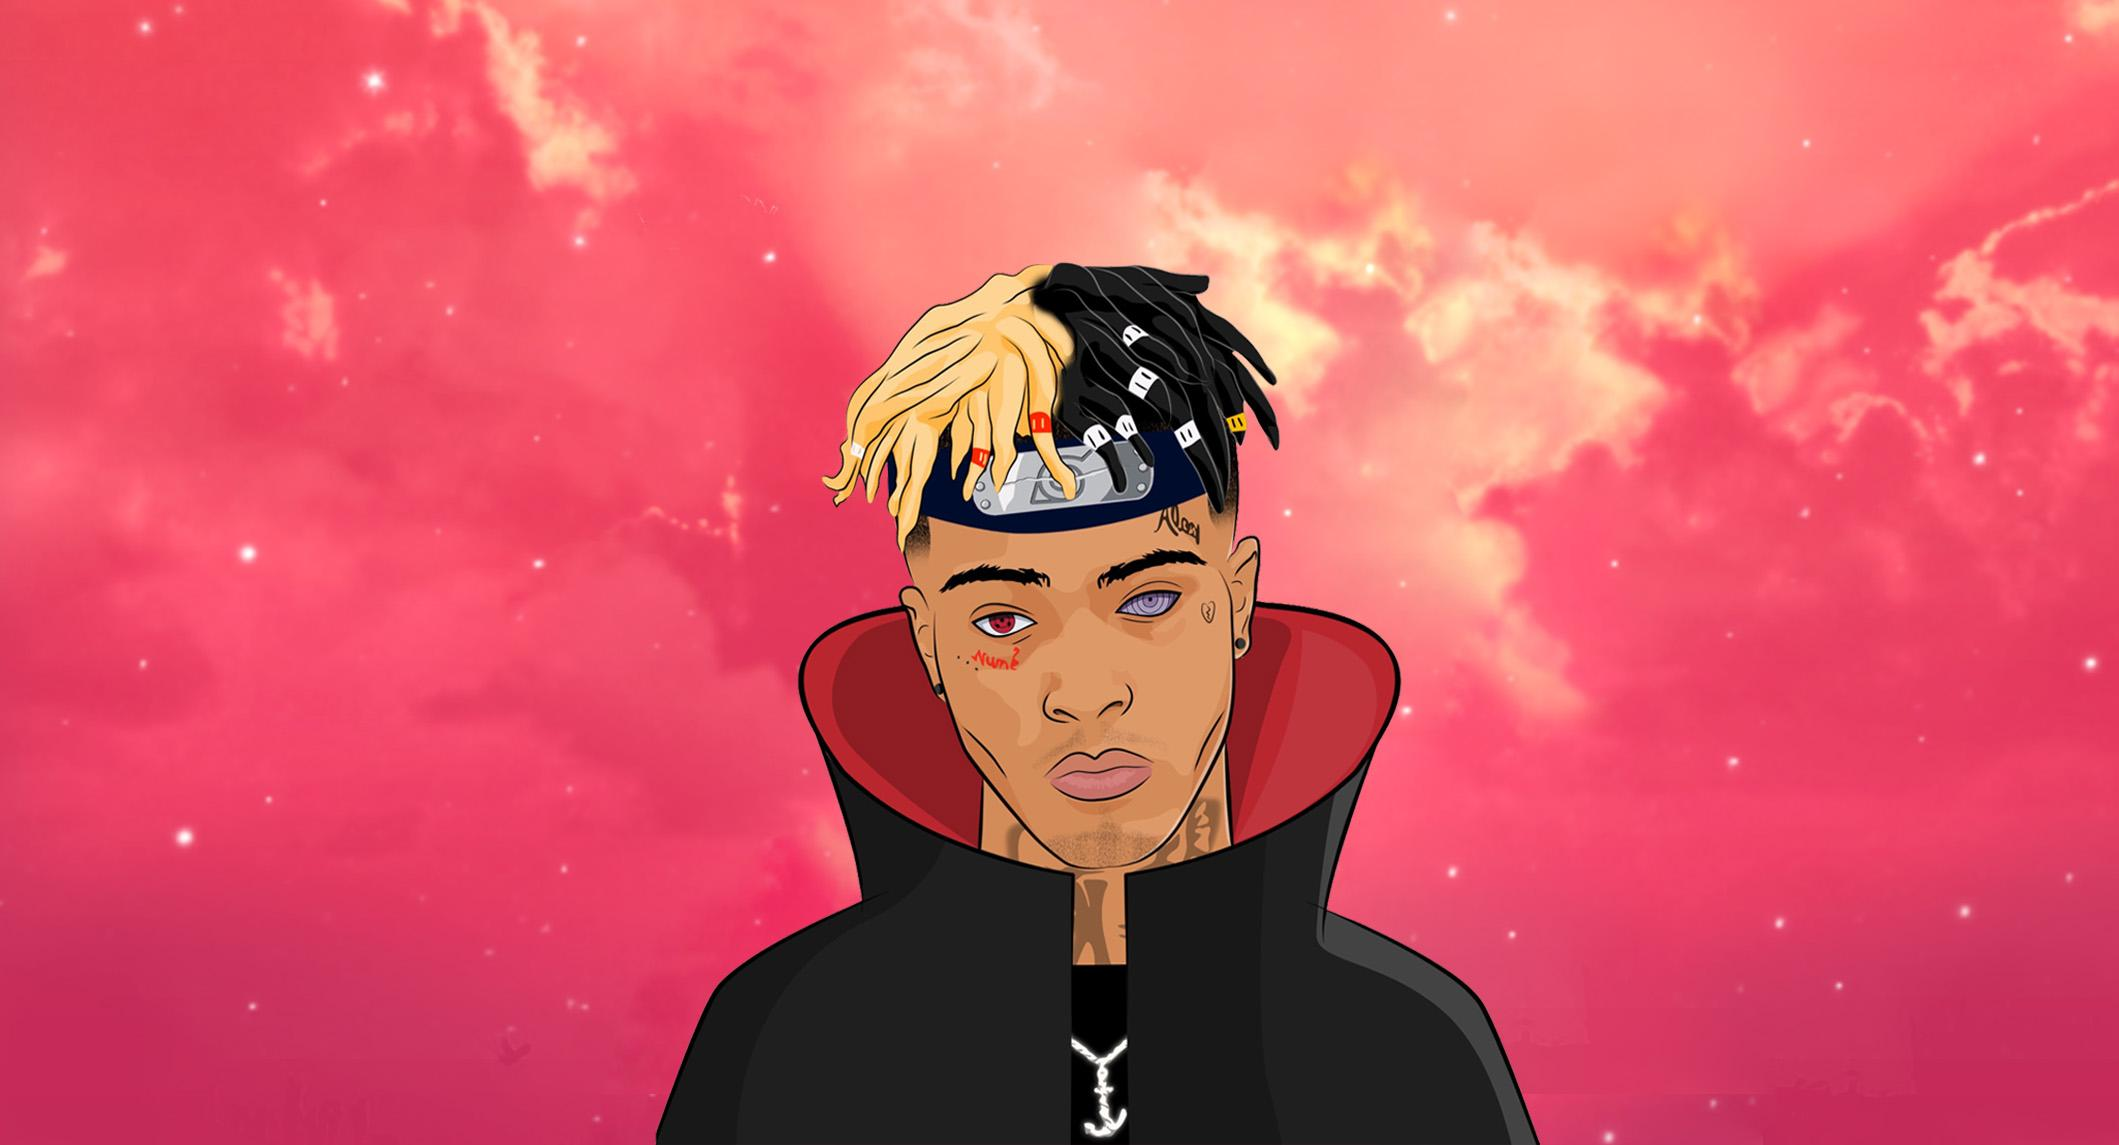 XXXTentacion Cartoon Wallpapers   Top XXXTentacion Cartoon 2119x1145